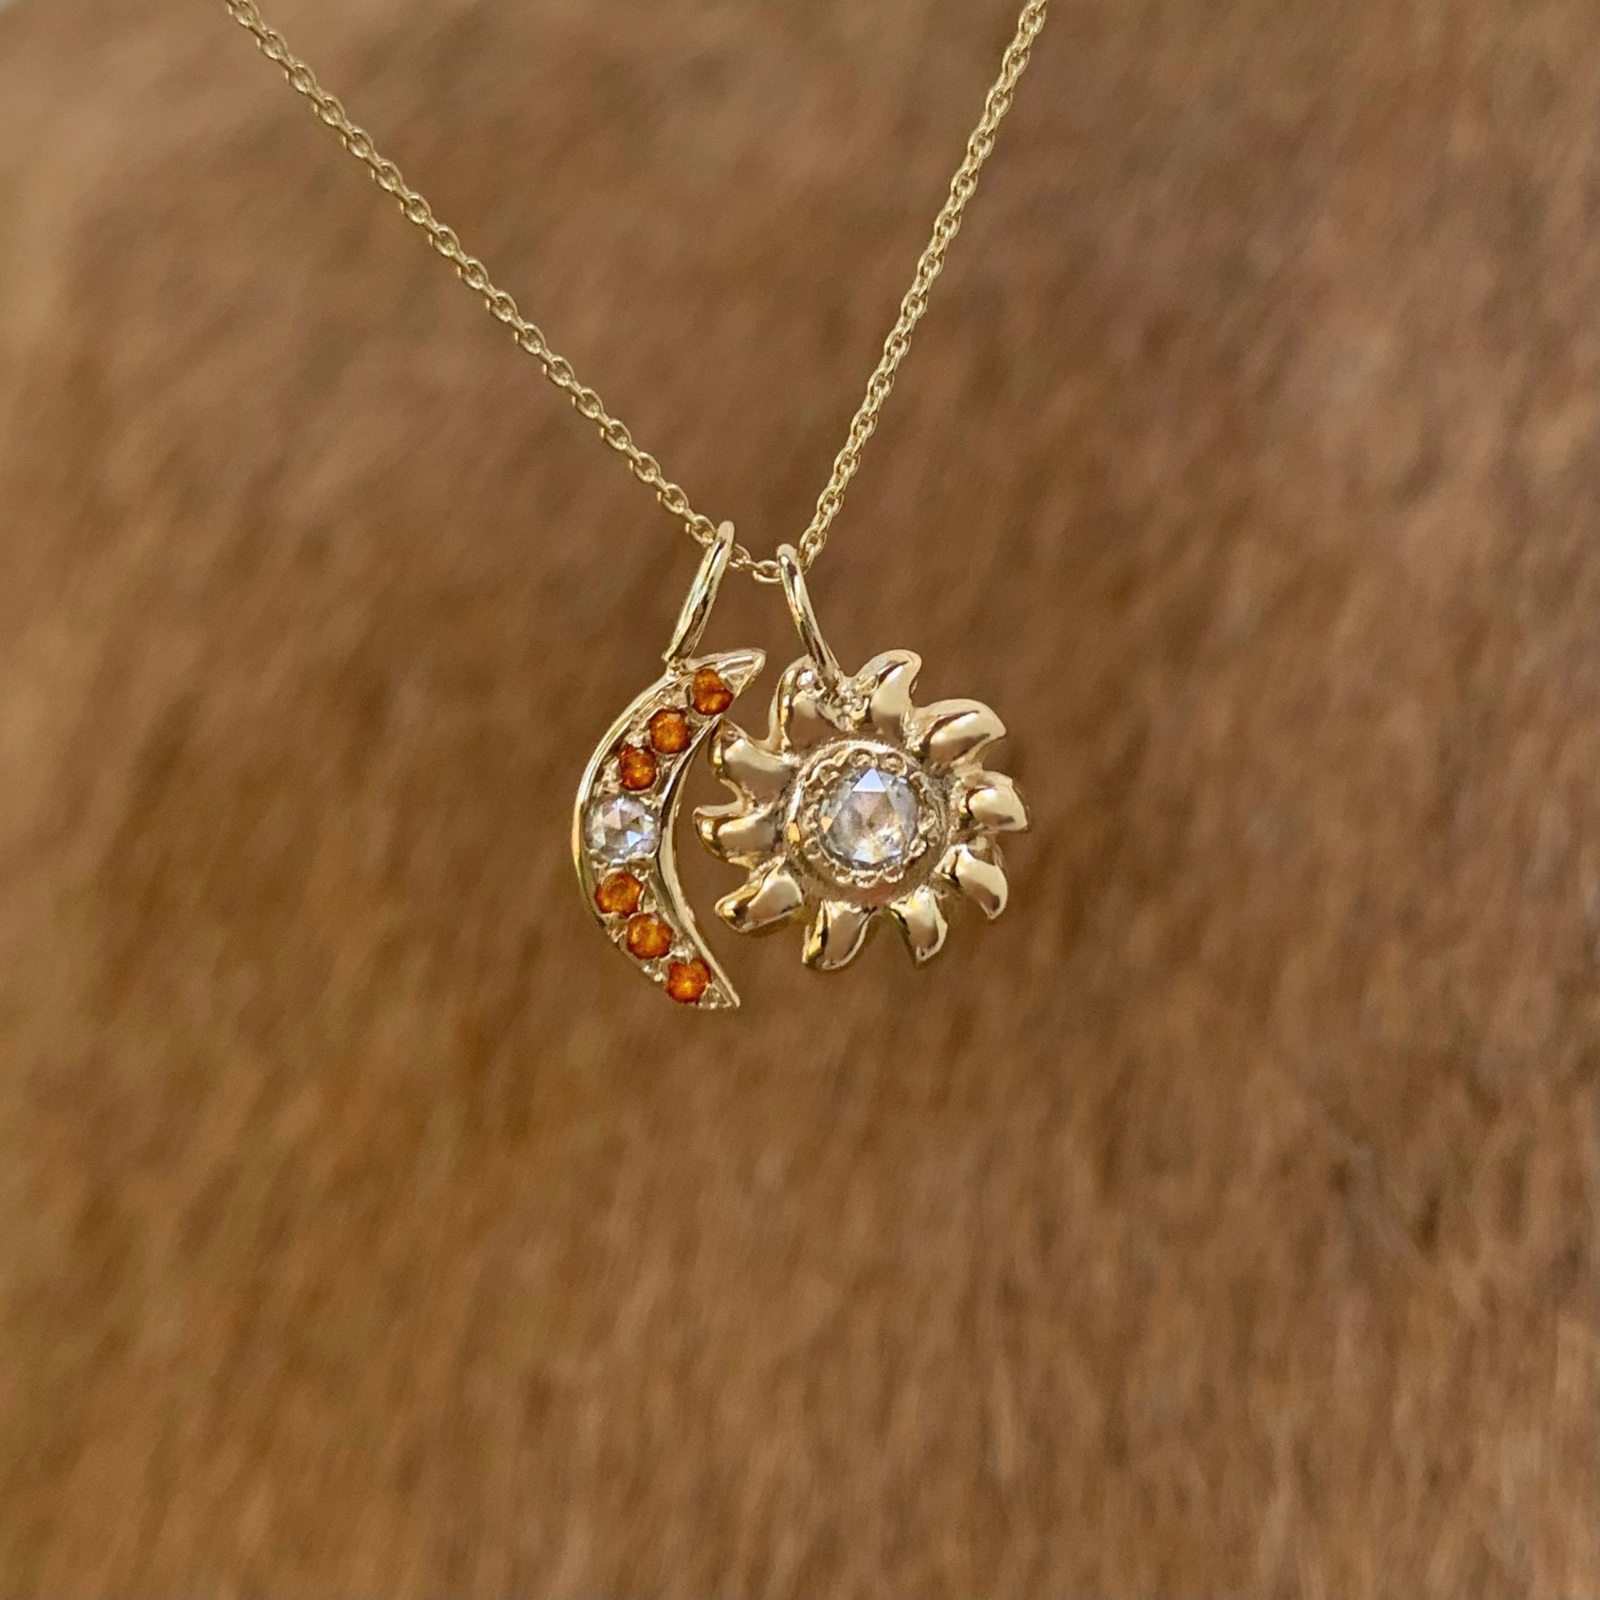 sun charm moon charm necklace jewelry 14k yellow gold